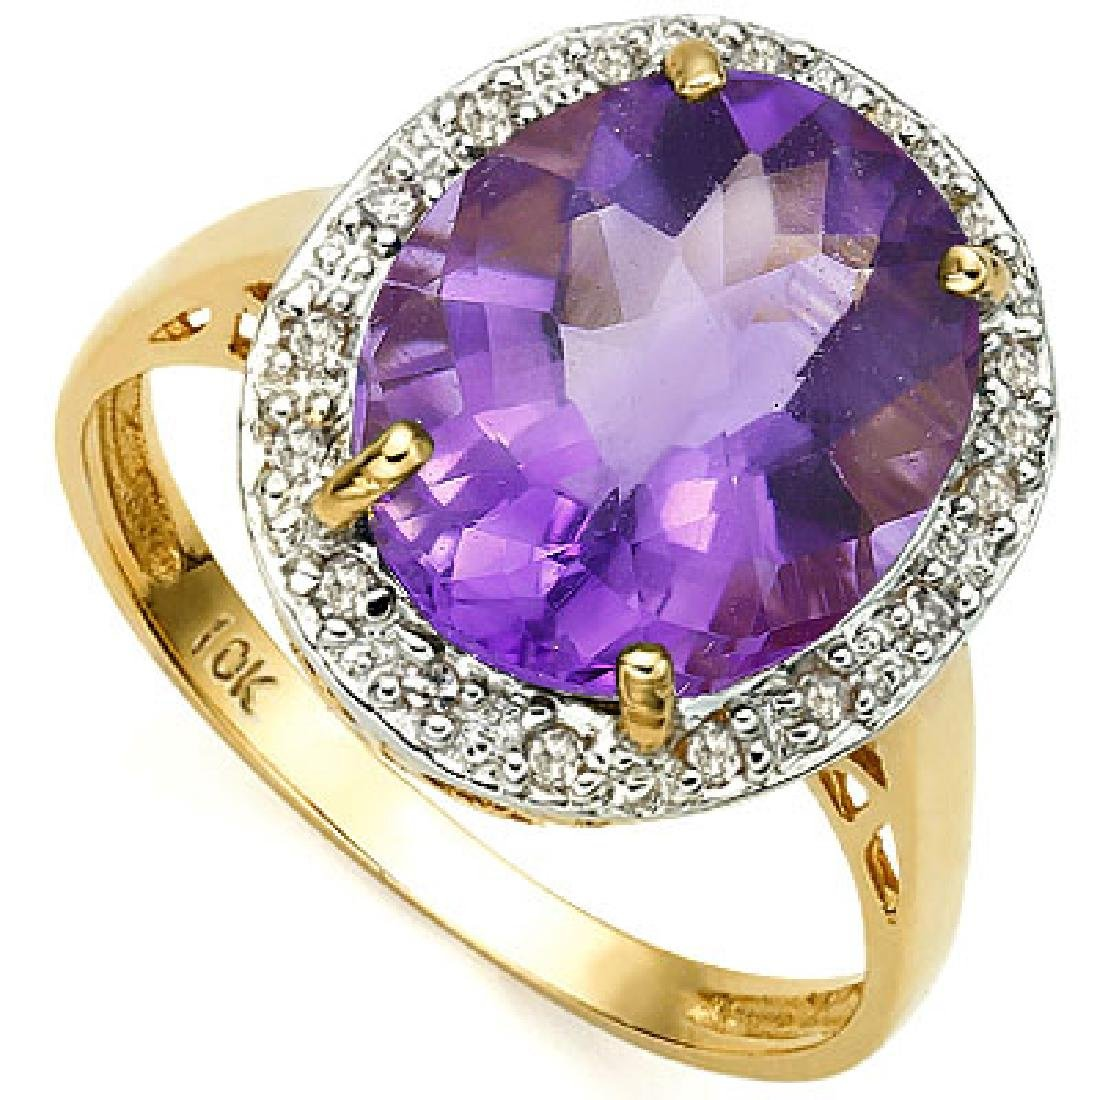 LOVELY 10K GOLD LAVENDAR AMETHYST/DIAMOND RING